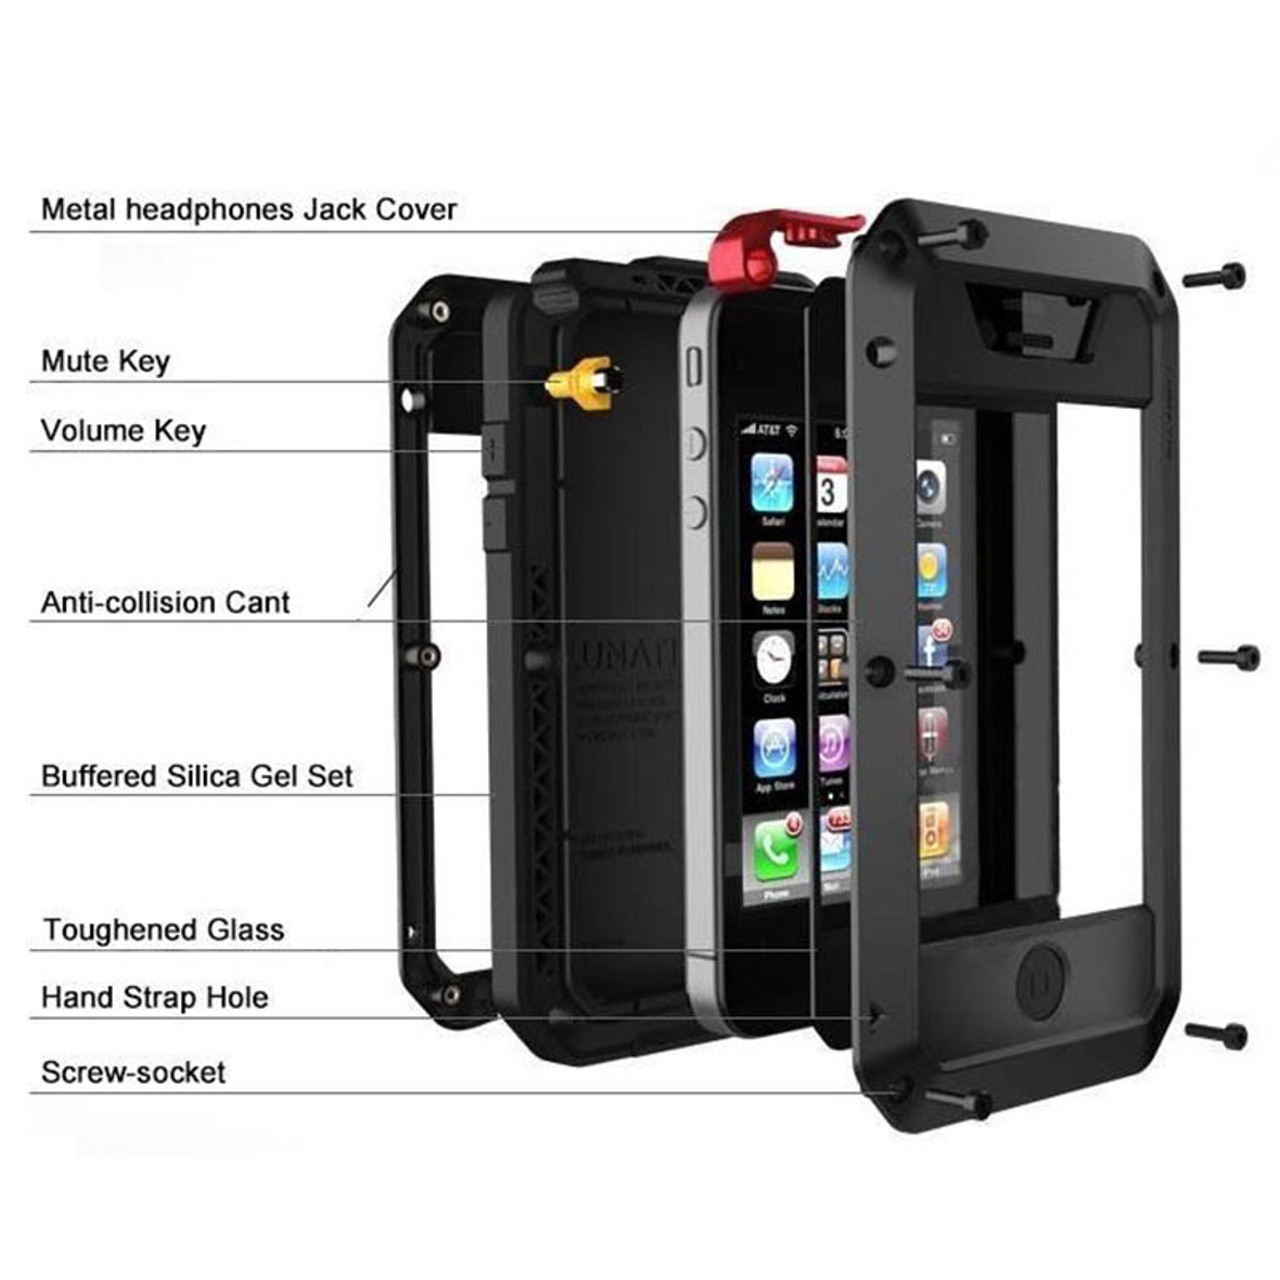 quality design 6130f 7a1c5 Heavy Duty Protection Doom armor Metal Aluminum phone Case for iPhone 6 6S  7 8 Plus X 4 4S 5S SE 5C Shockproof Dustproof Cover